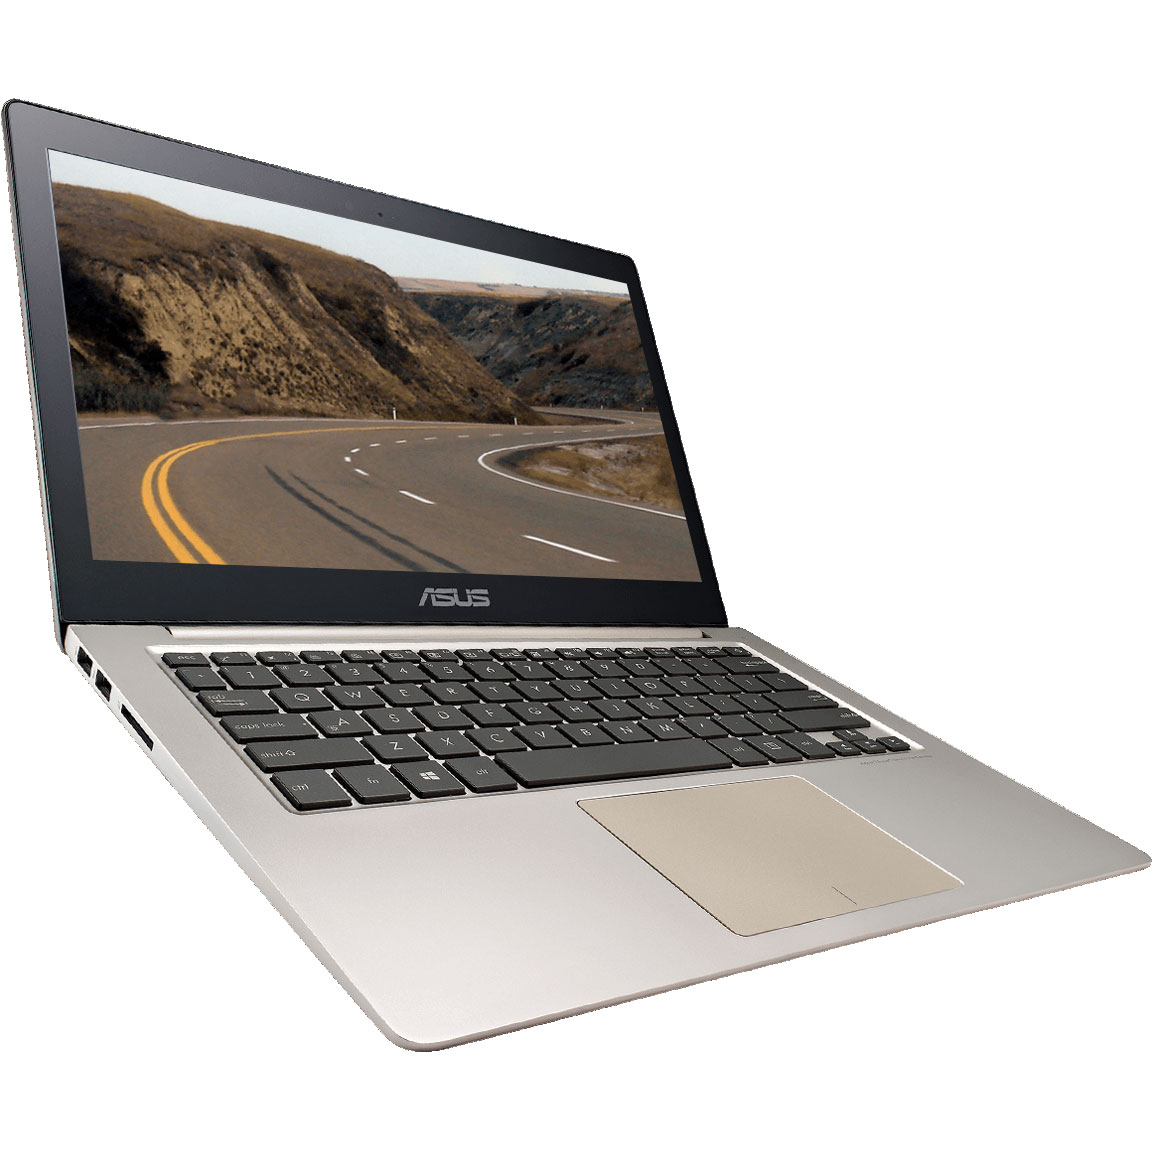 asus zenbook ux303ub r4065t pc portable asus sur. Black Bedroom Furniture Sets. Home Design Ideas